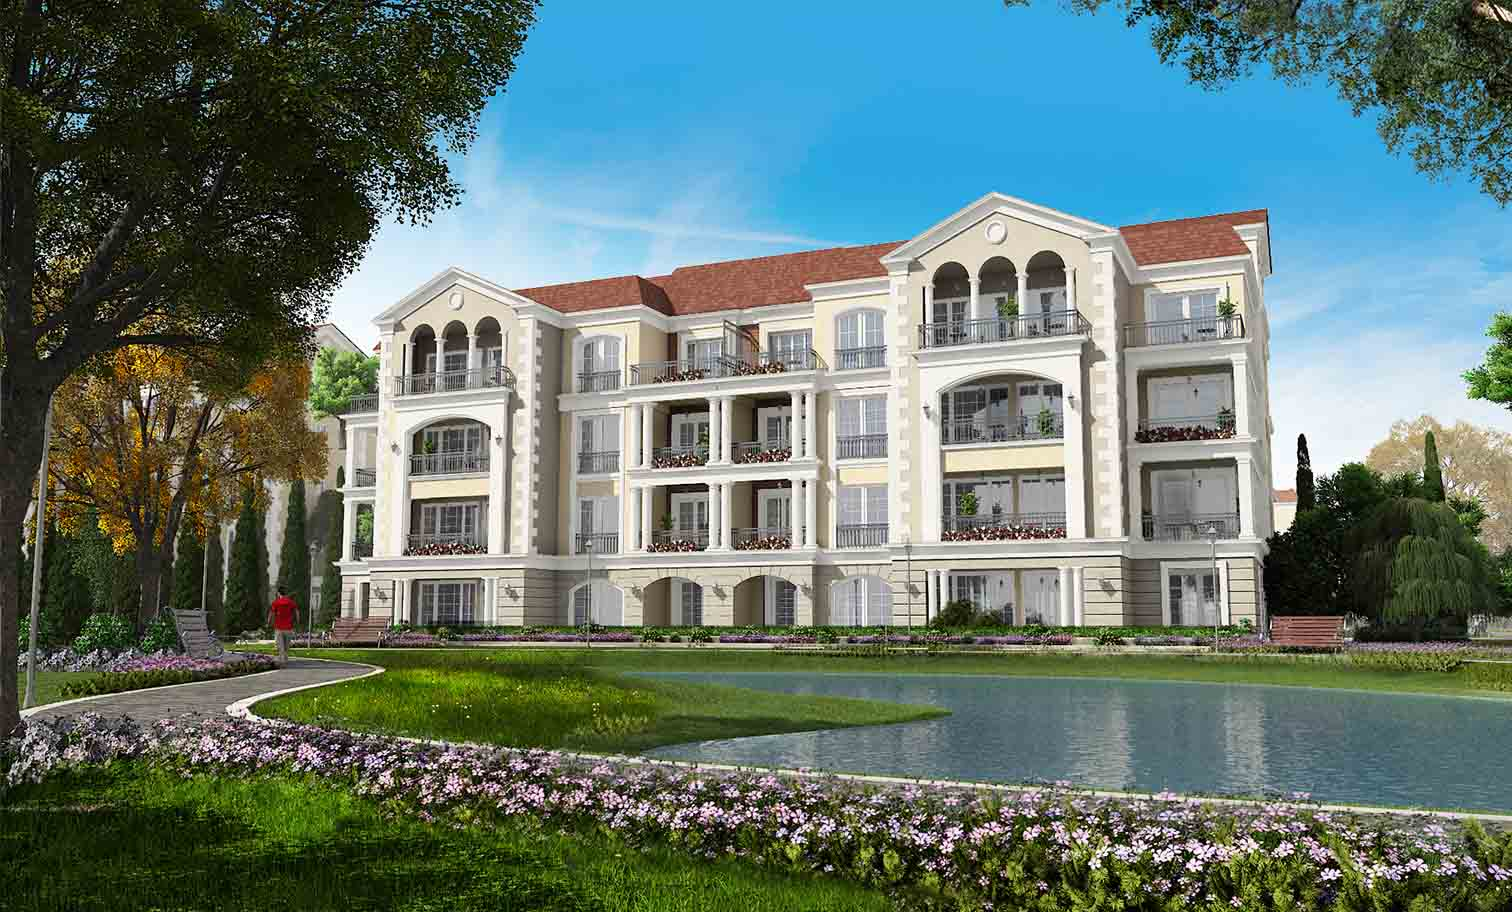 Property For Sale in Regents Park New Cairo